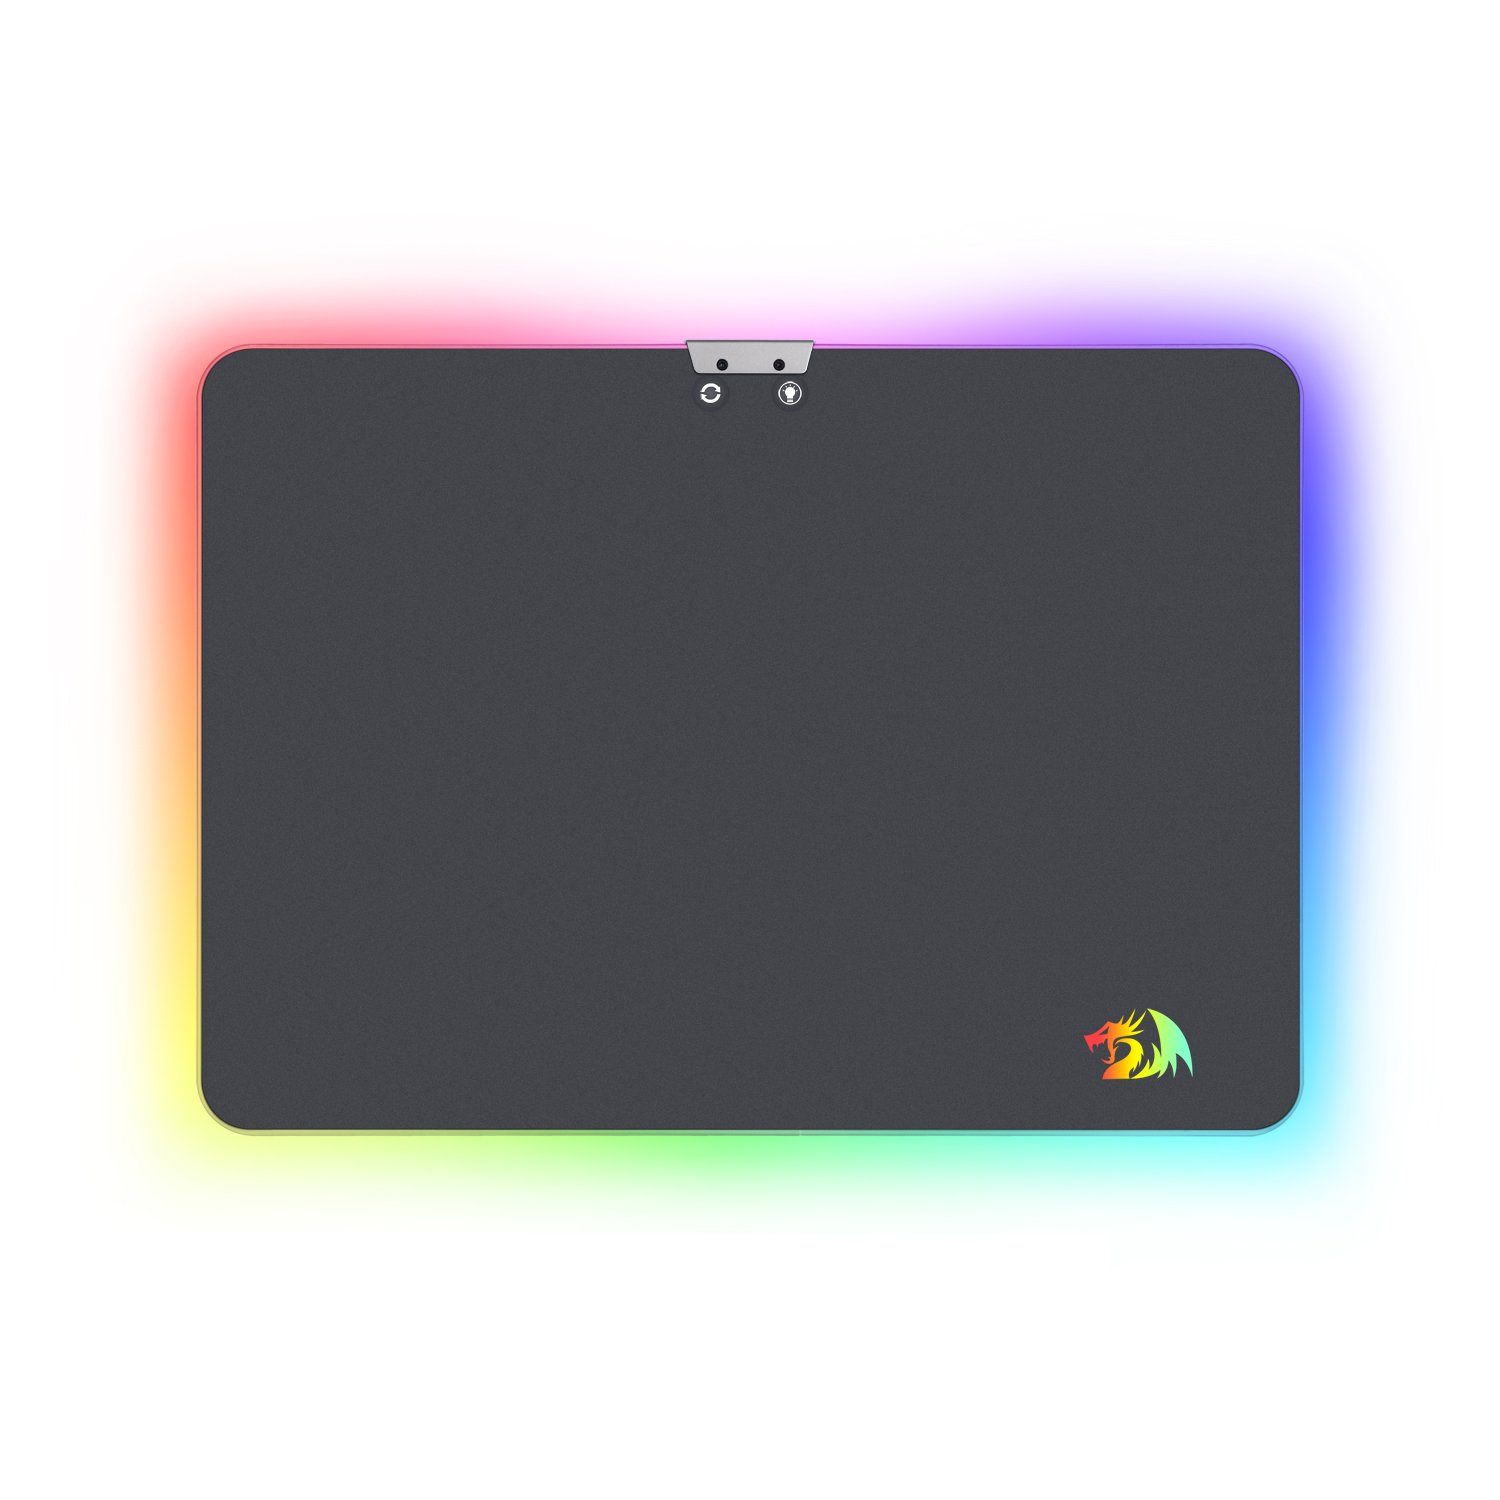 RGB Mouse Pad, P010 Aurora, Wired RGB LED Gaming Mouse Pad, Hard Non-Slip Rubber Surface Mouse Mat, 16.8 Million Colors, Optimized For All Computer Mouse Sensitivity MMO and Sensors By Redragon